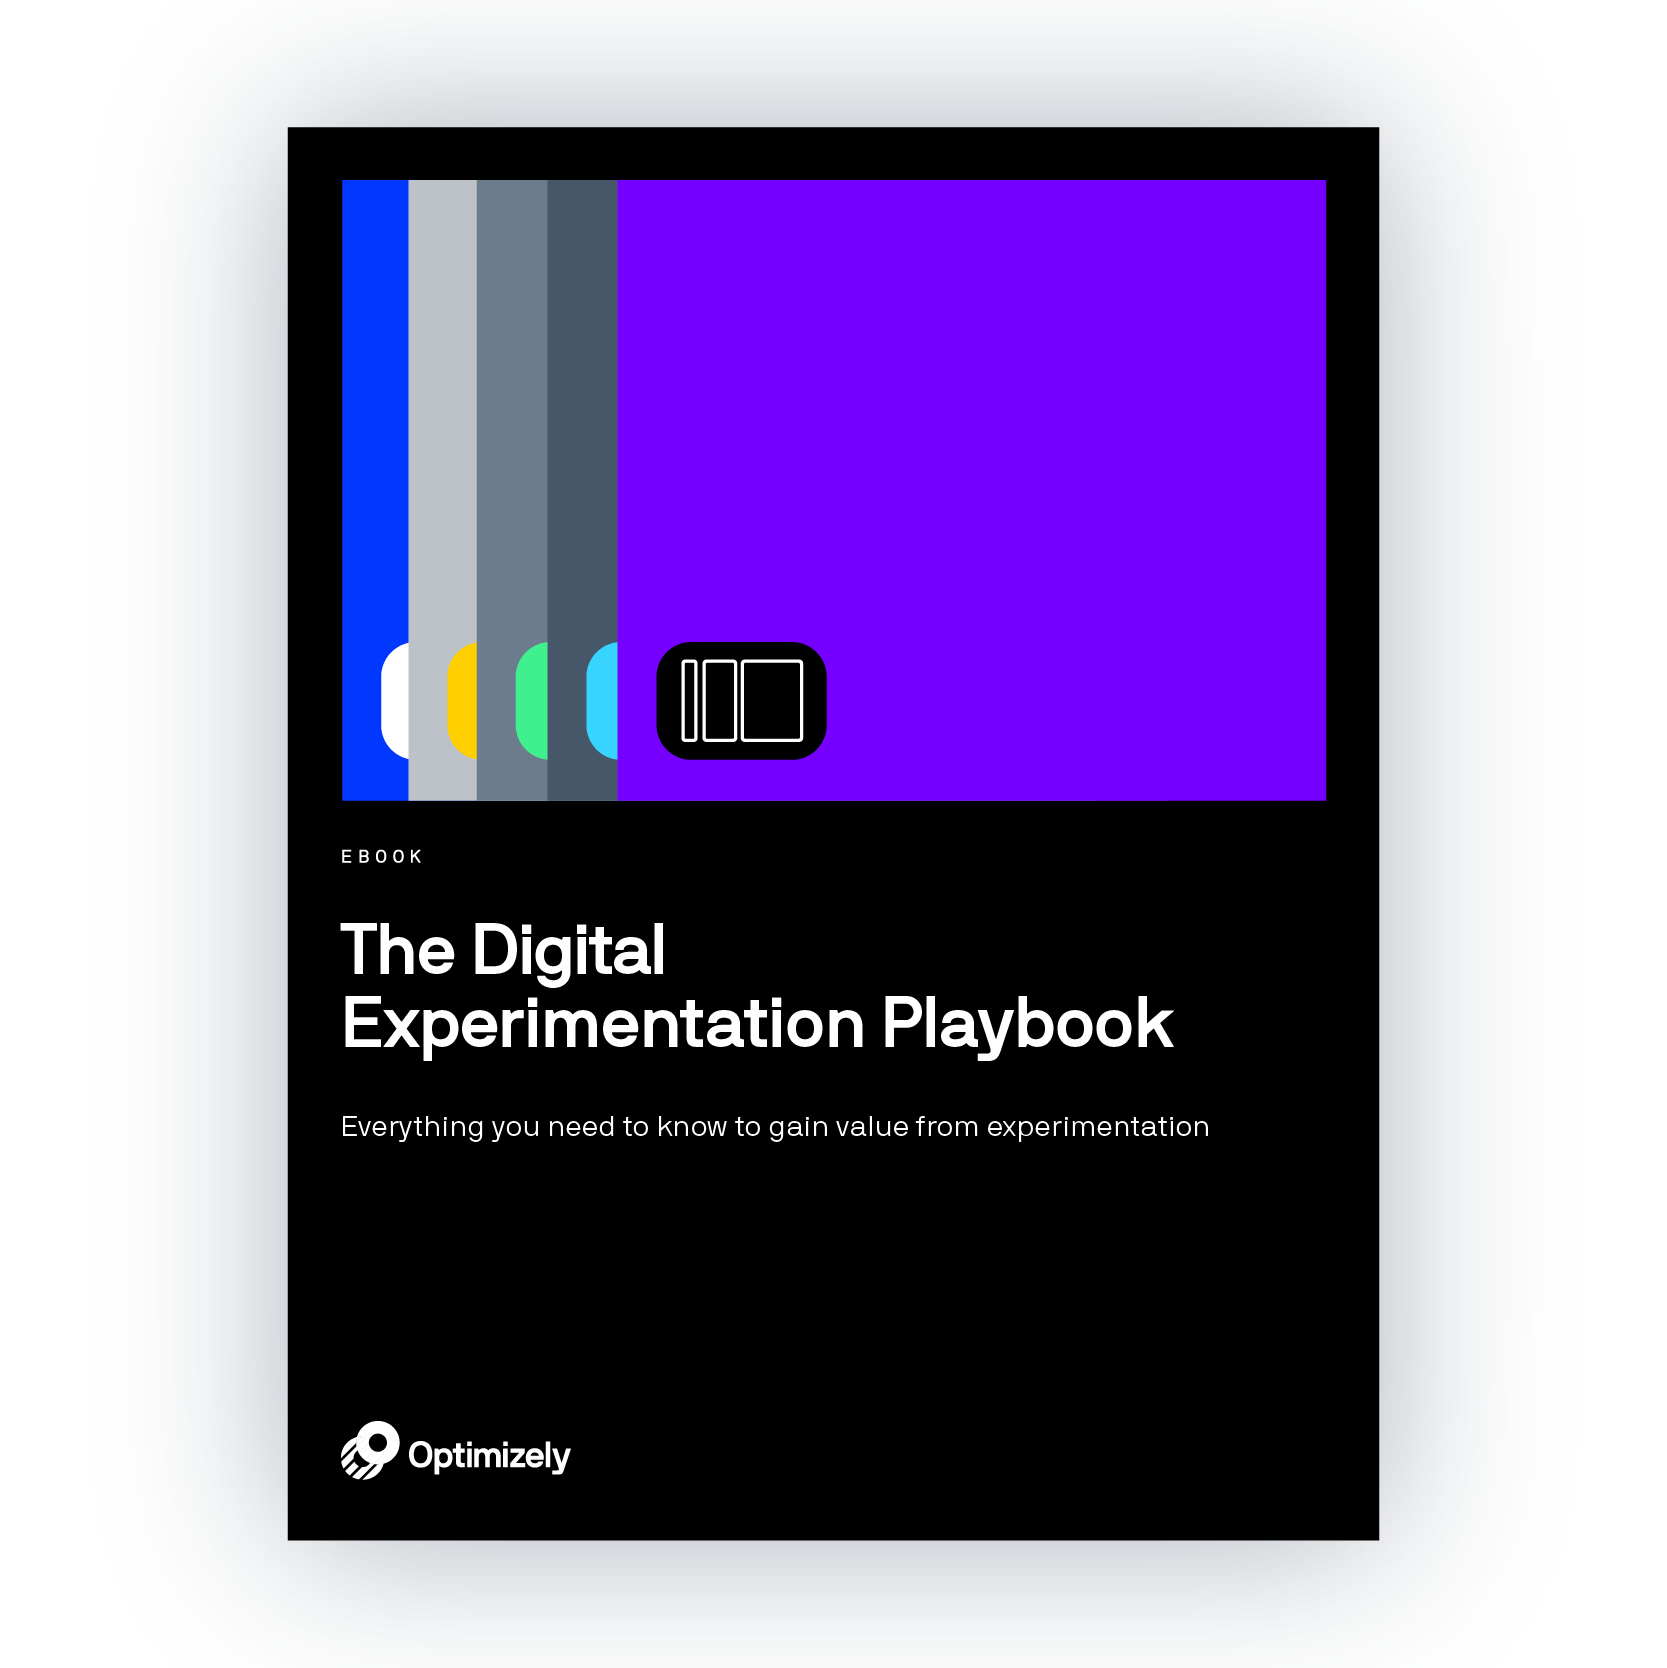 The Digital Experimentation Playbook